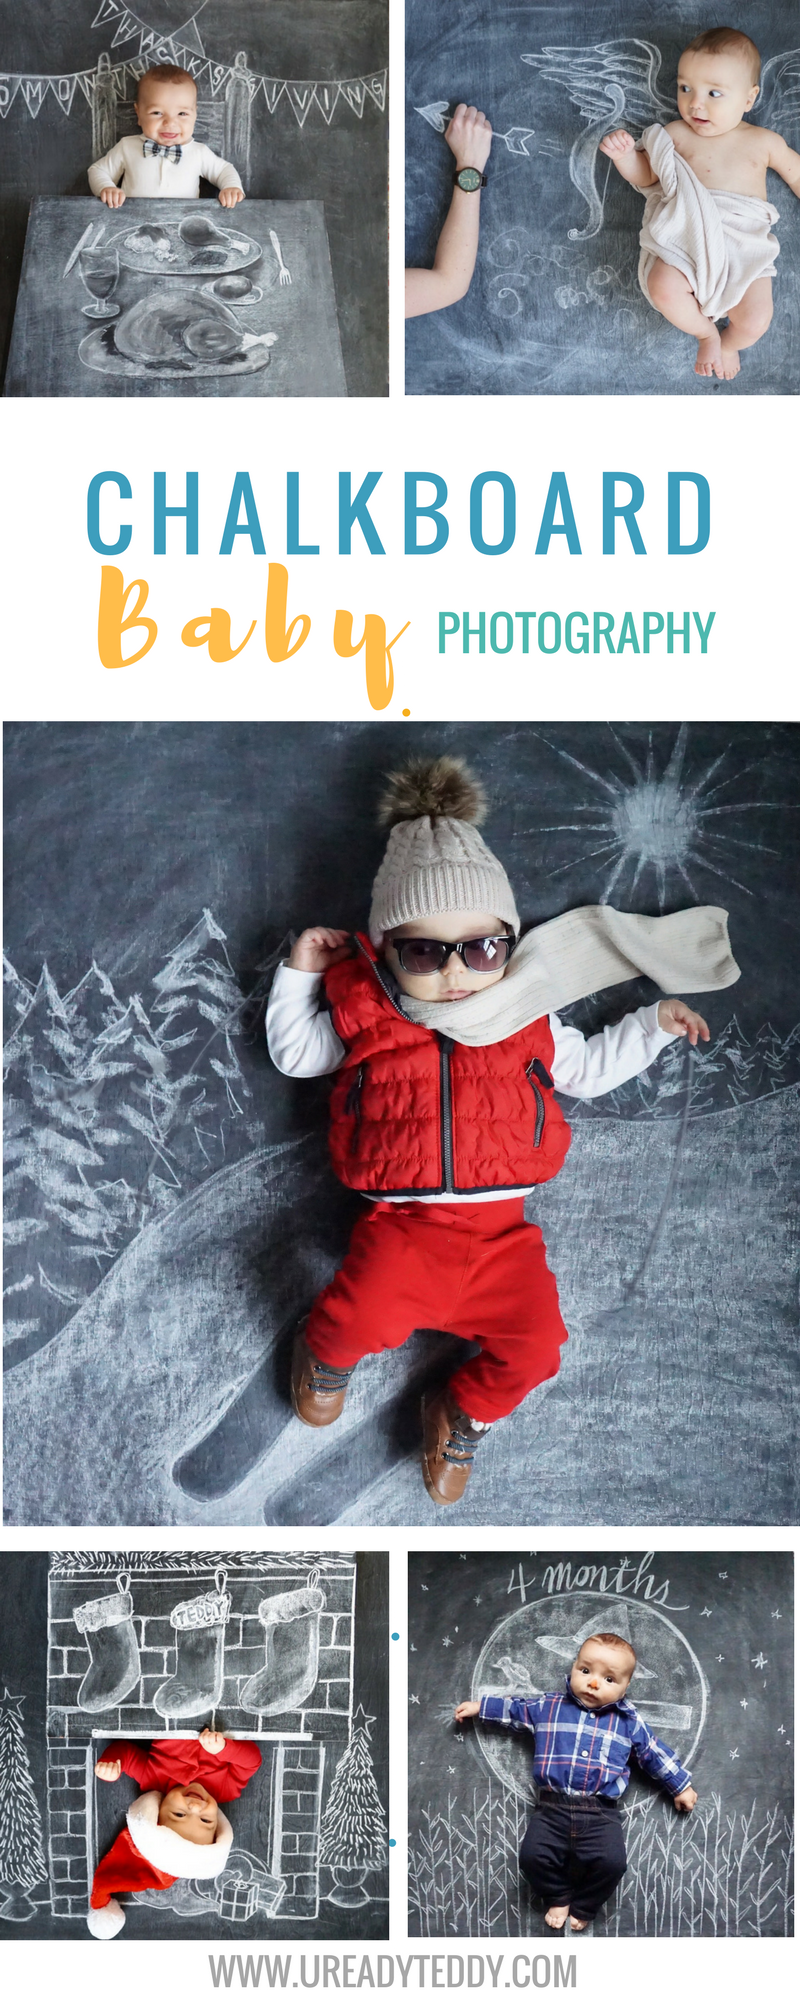 Chalkboard Baby Photography